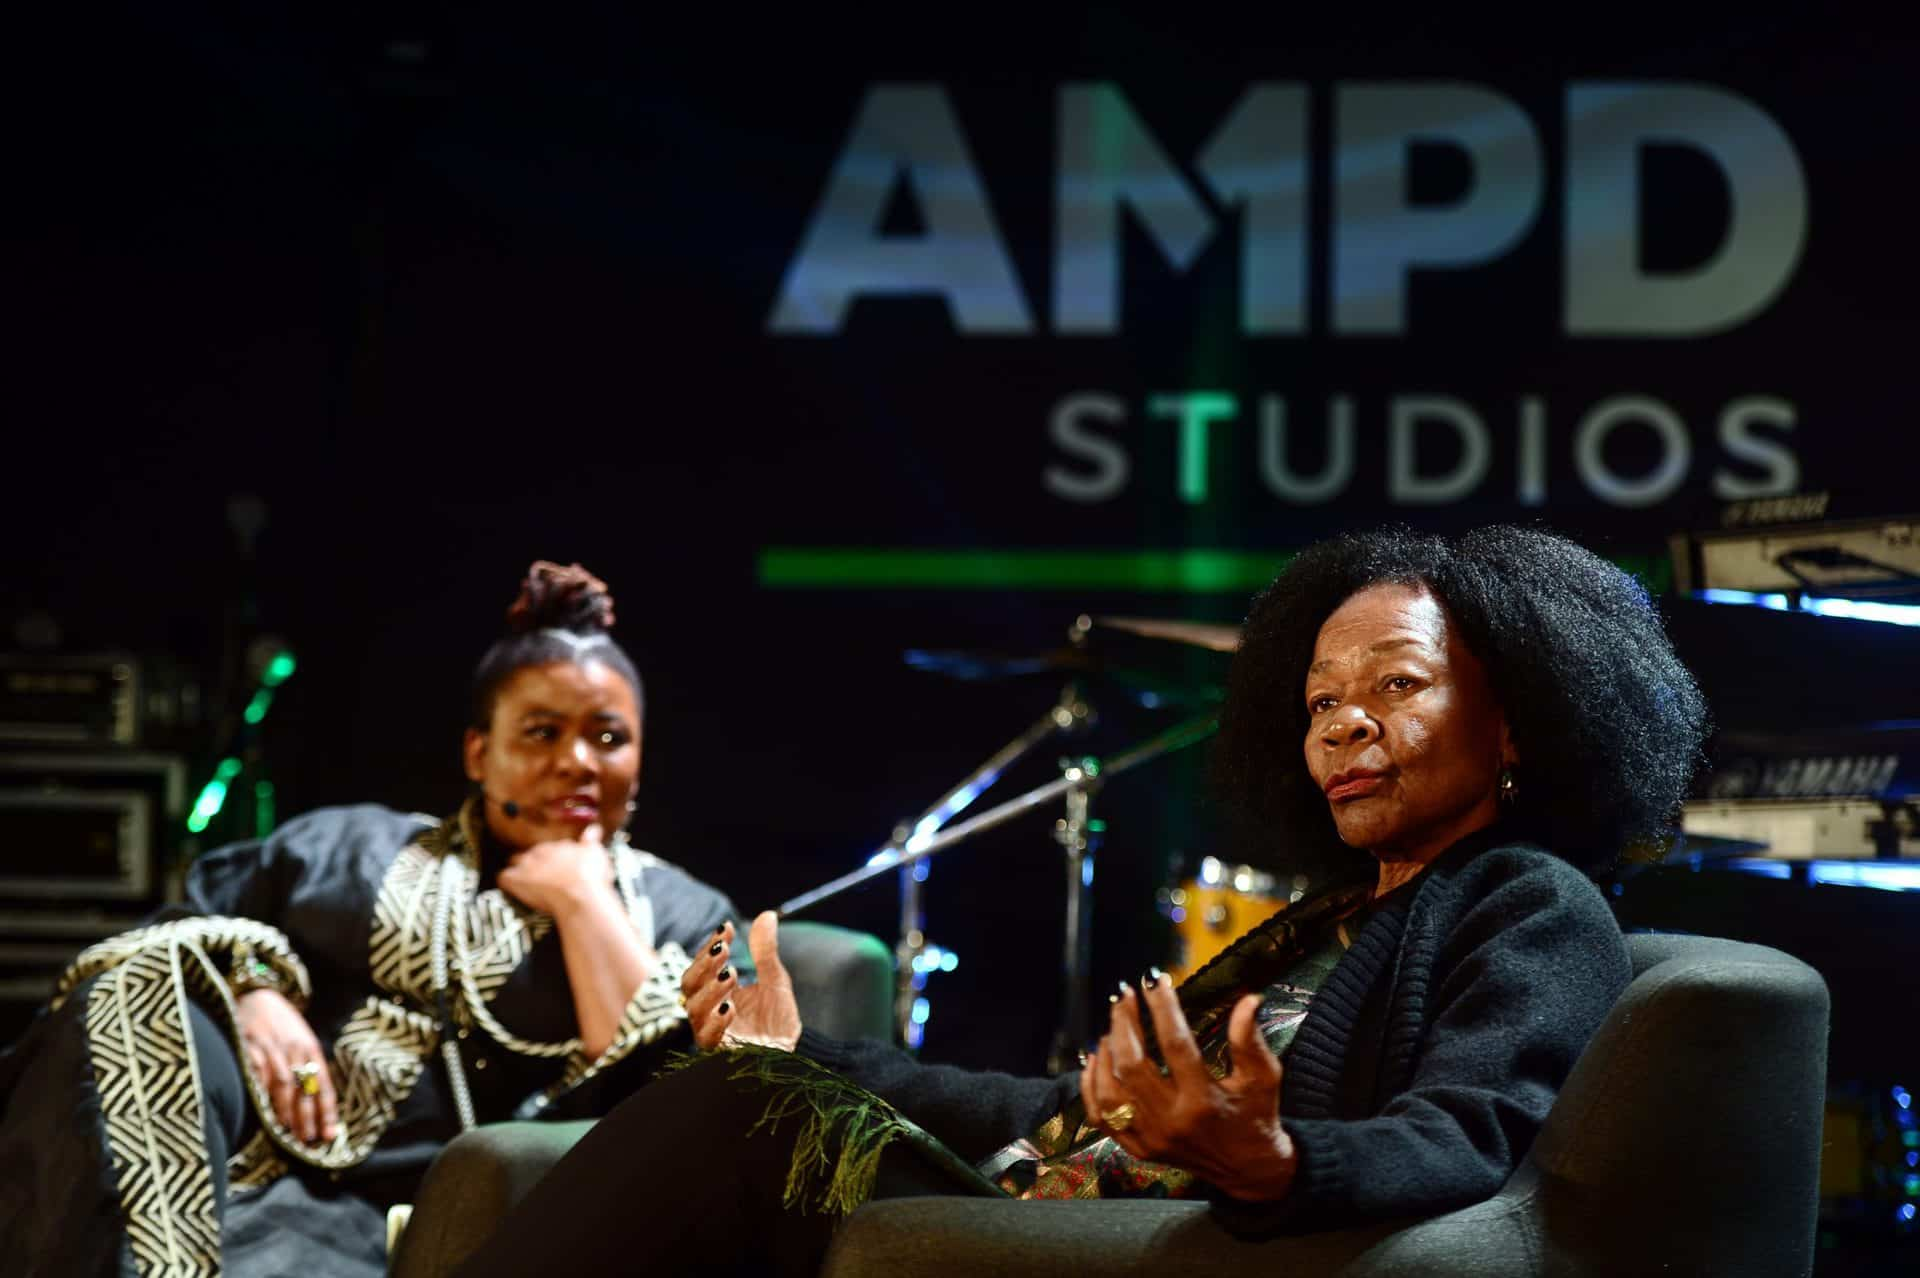 Invest In Yourself It's Not All About Property Letta Mbulu & Thandiswa Mazwai